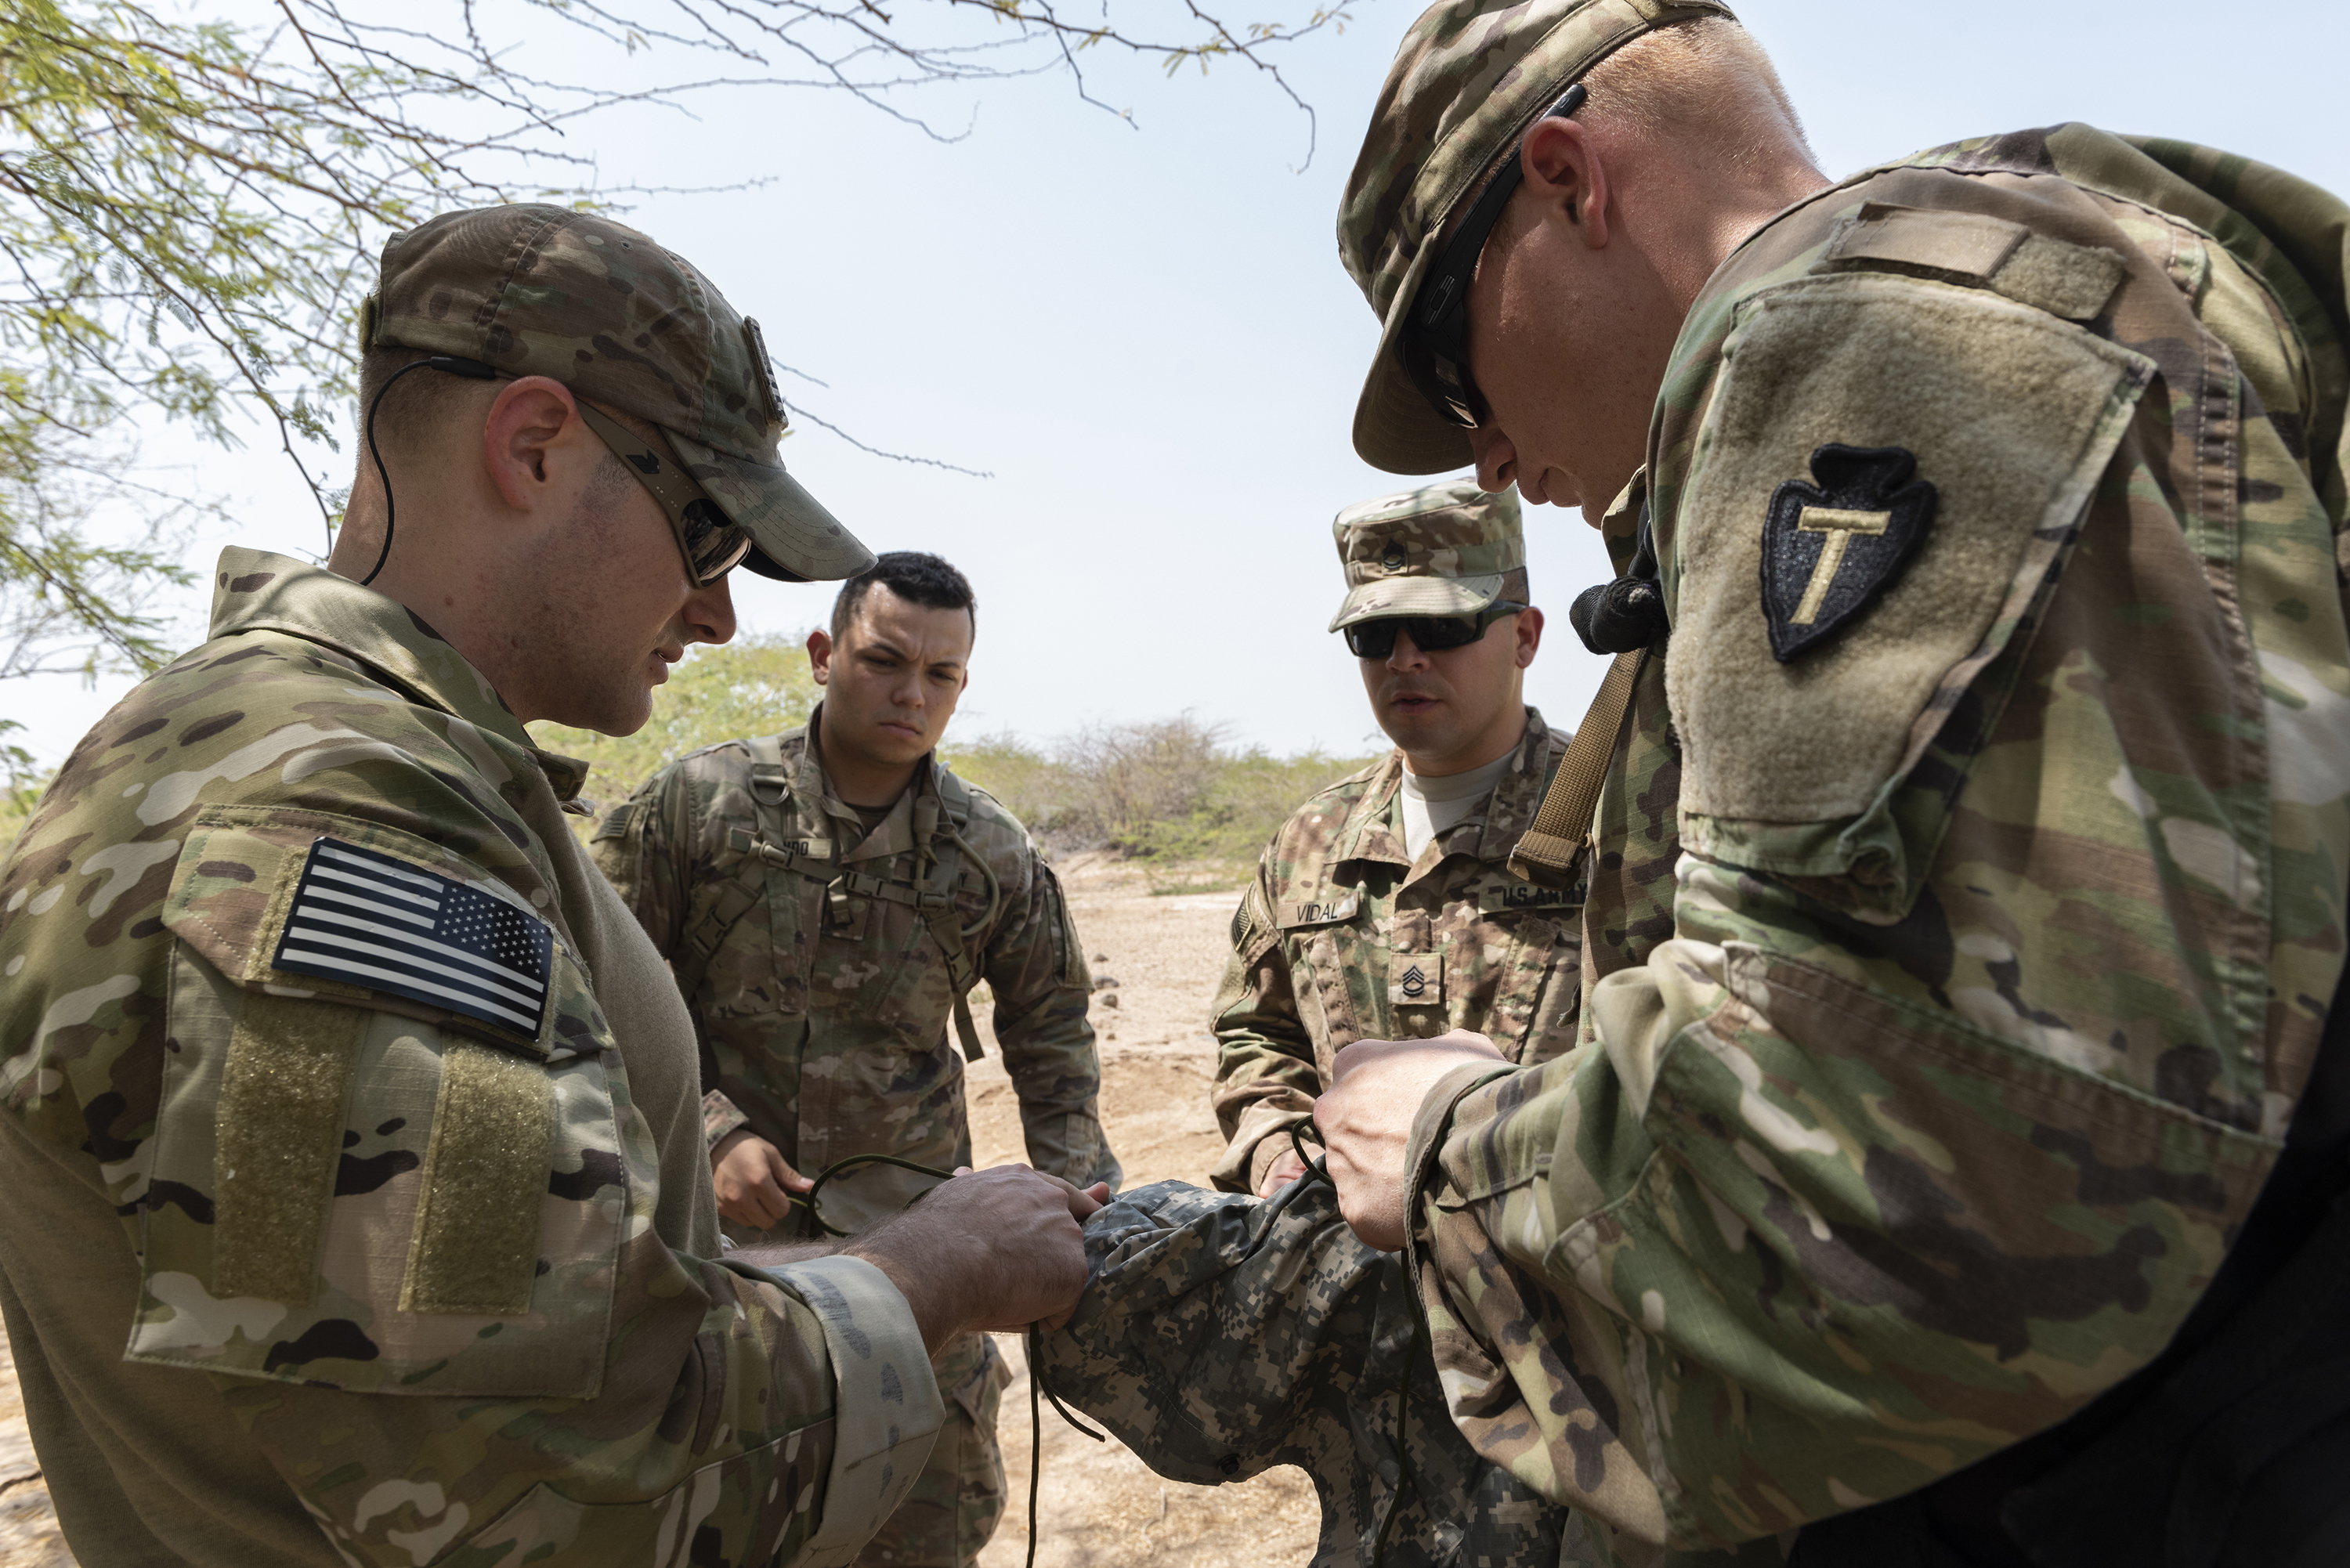 From Left: U.S. Air Force Tech. Sgt. Adam Murphy, a survival, evasion, resistance and escape specialist assigned to Combined Joint Task Force-Horn of Africa, teaches U.S. Army Pfc. Jonathan Galindo, a field artillery firefinder radar operator, Sgt. 1st Class Amando Vidal, a field artillery firefinder radar operator, and Spec. Killian Tooke, a radar repairer, all assigned to 3rd Battalion, 133rd Field Artillery Regiment, Texas National Guard, how to create a slipknot, bowline and a trucker's hitch during survival skills training on Camp Lemonnier, Djibouti, Oct. 13, 2018. During this training, service members performed various skills such as constructing a shelter, finding alternative water sources and signaling for rescue. (U.S. Air National Guard photo by Master Sgt. Sarah Mattison)